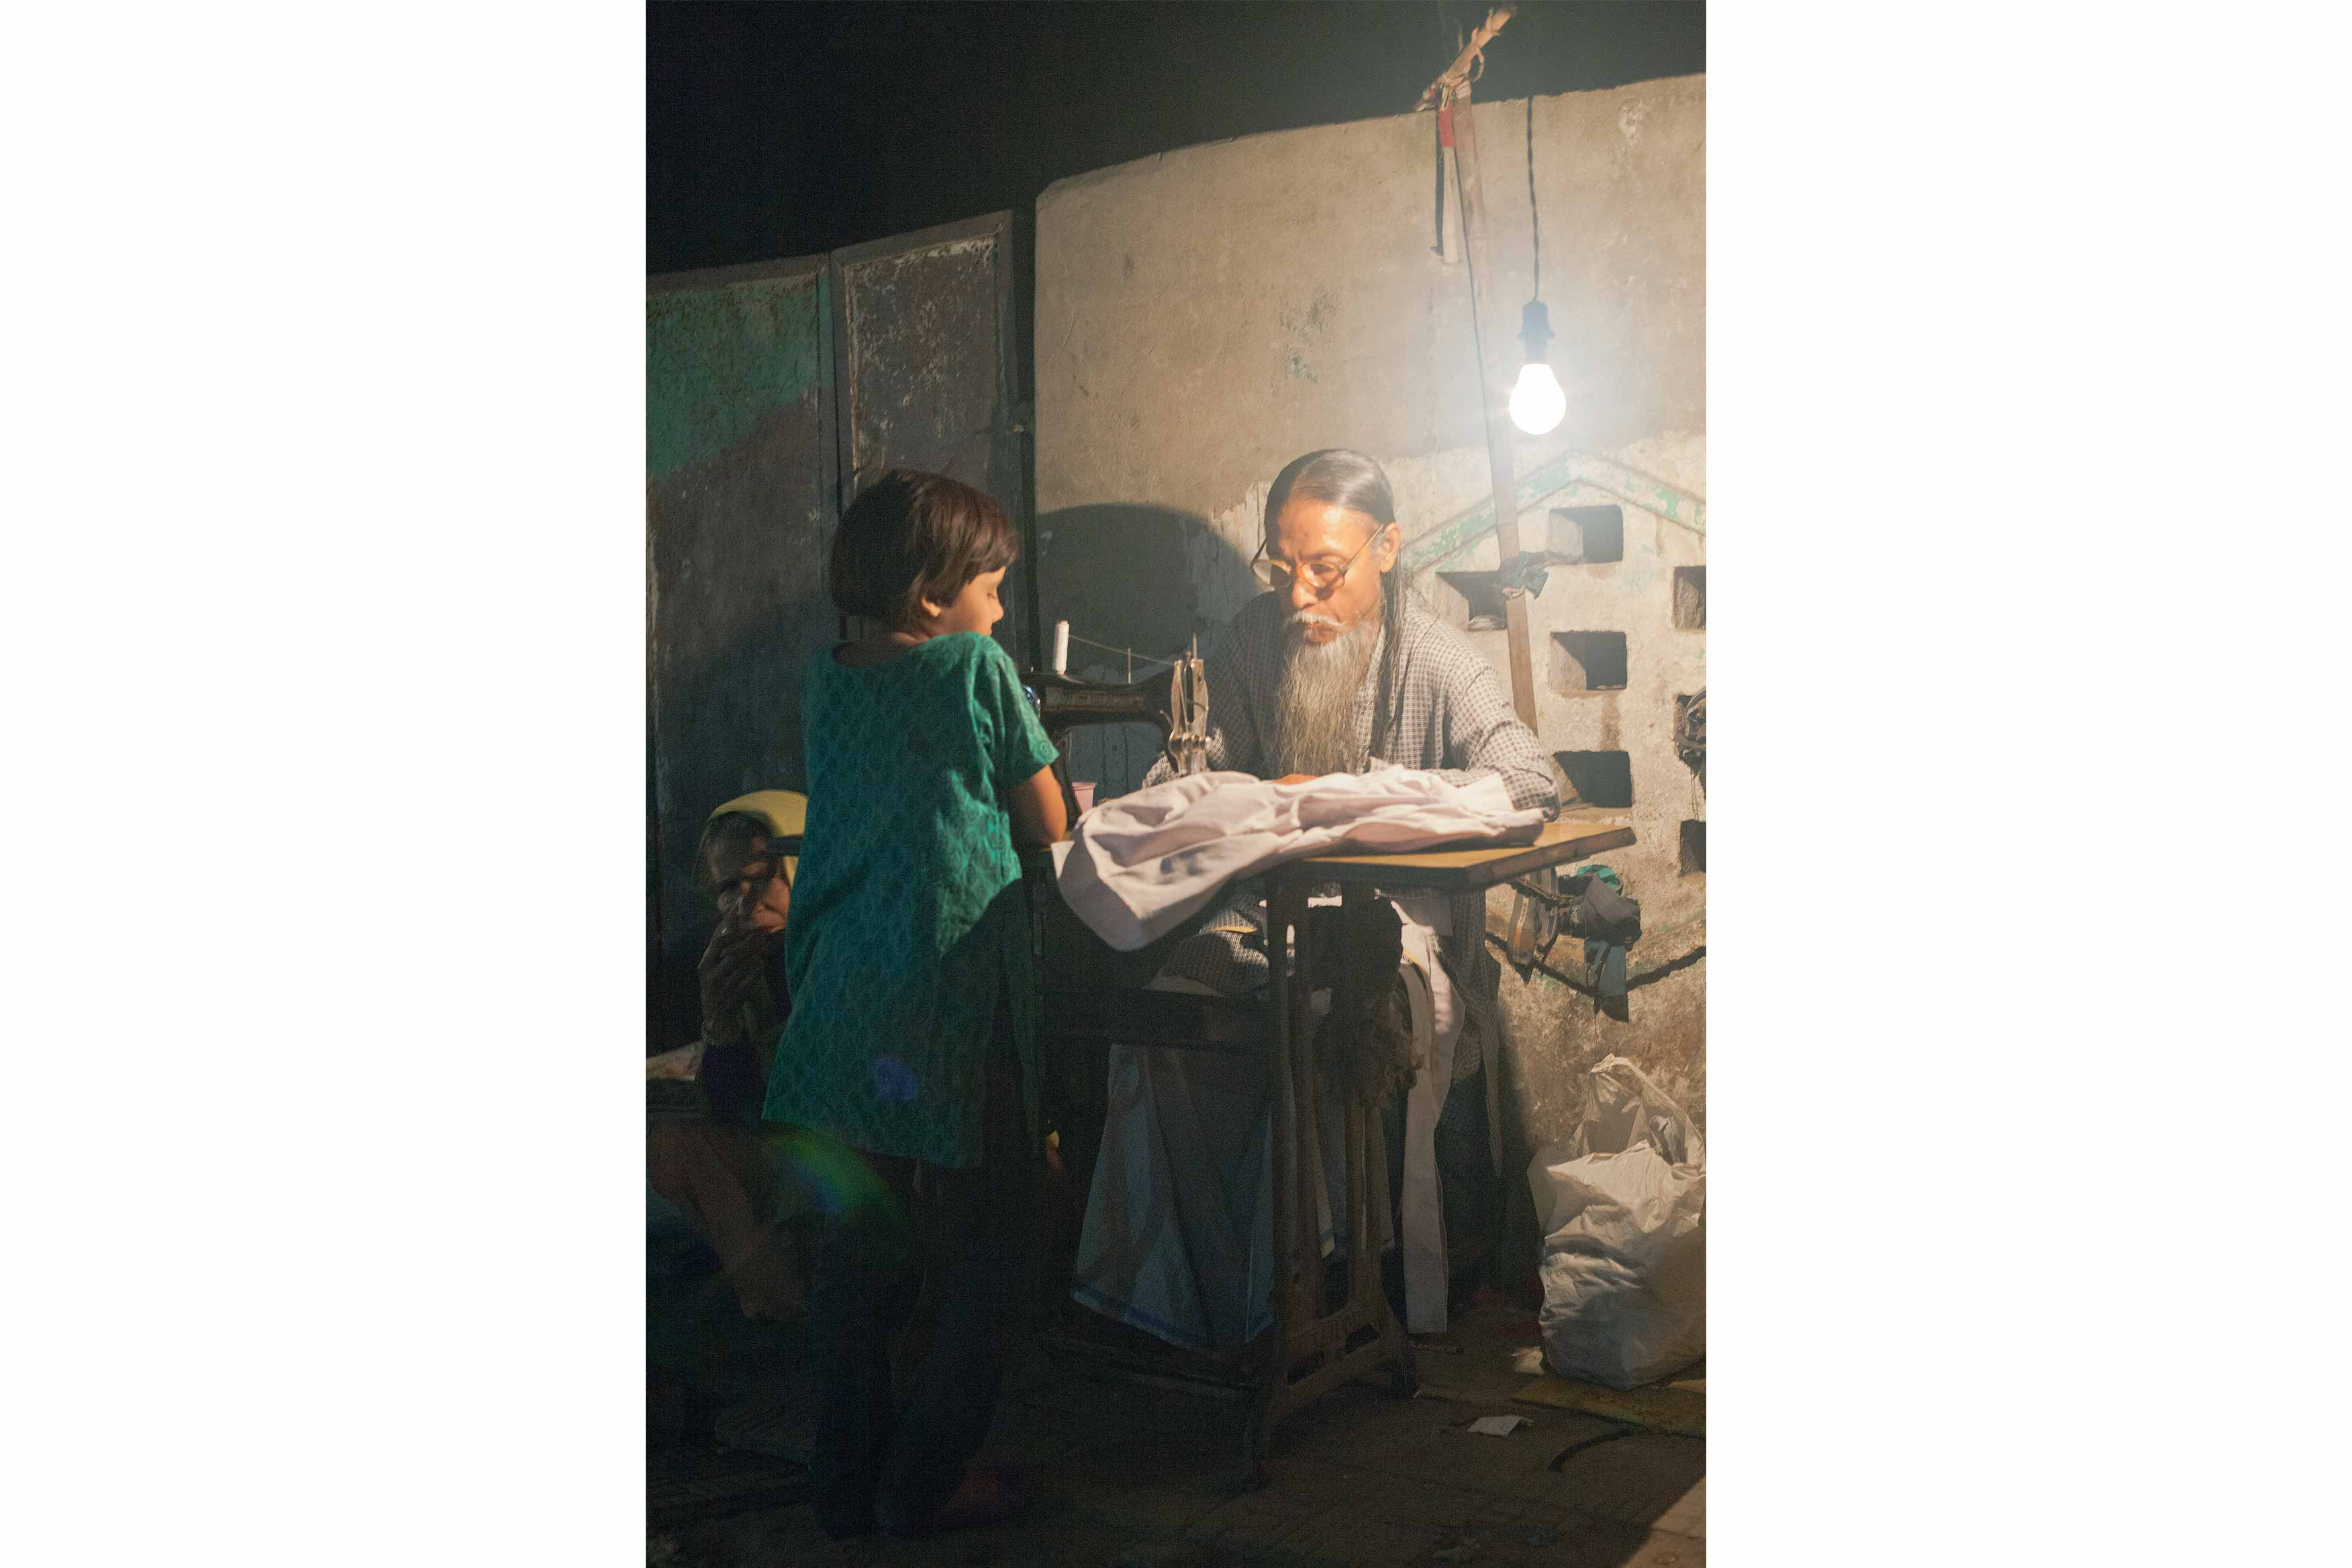 Street tailor, Delhi - commended in the Sony World Photography low-light category (2012)